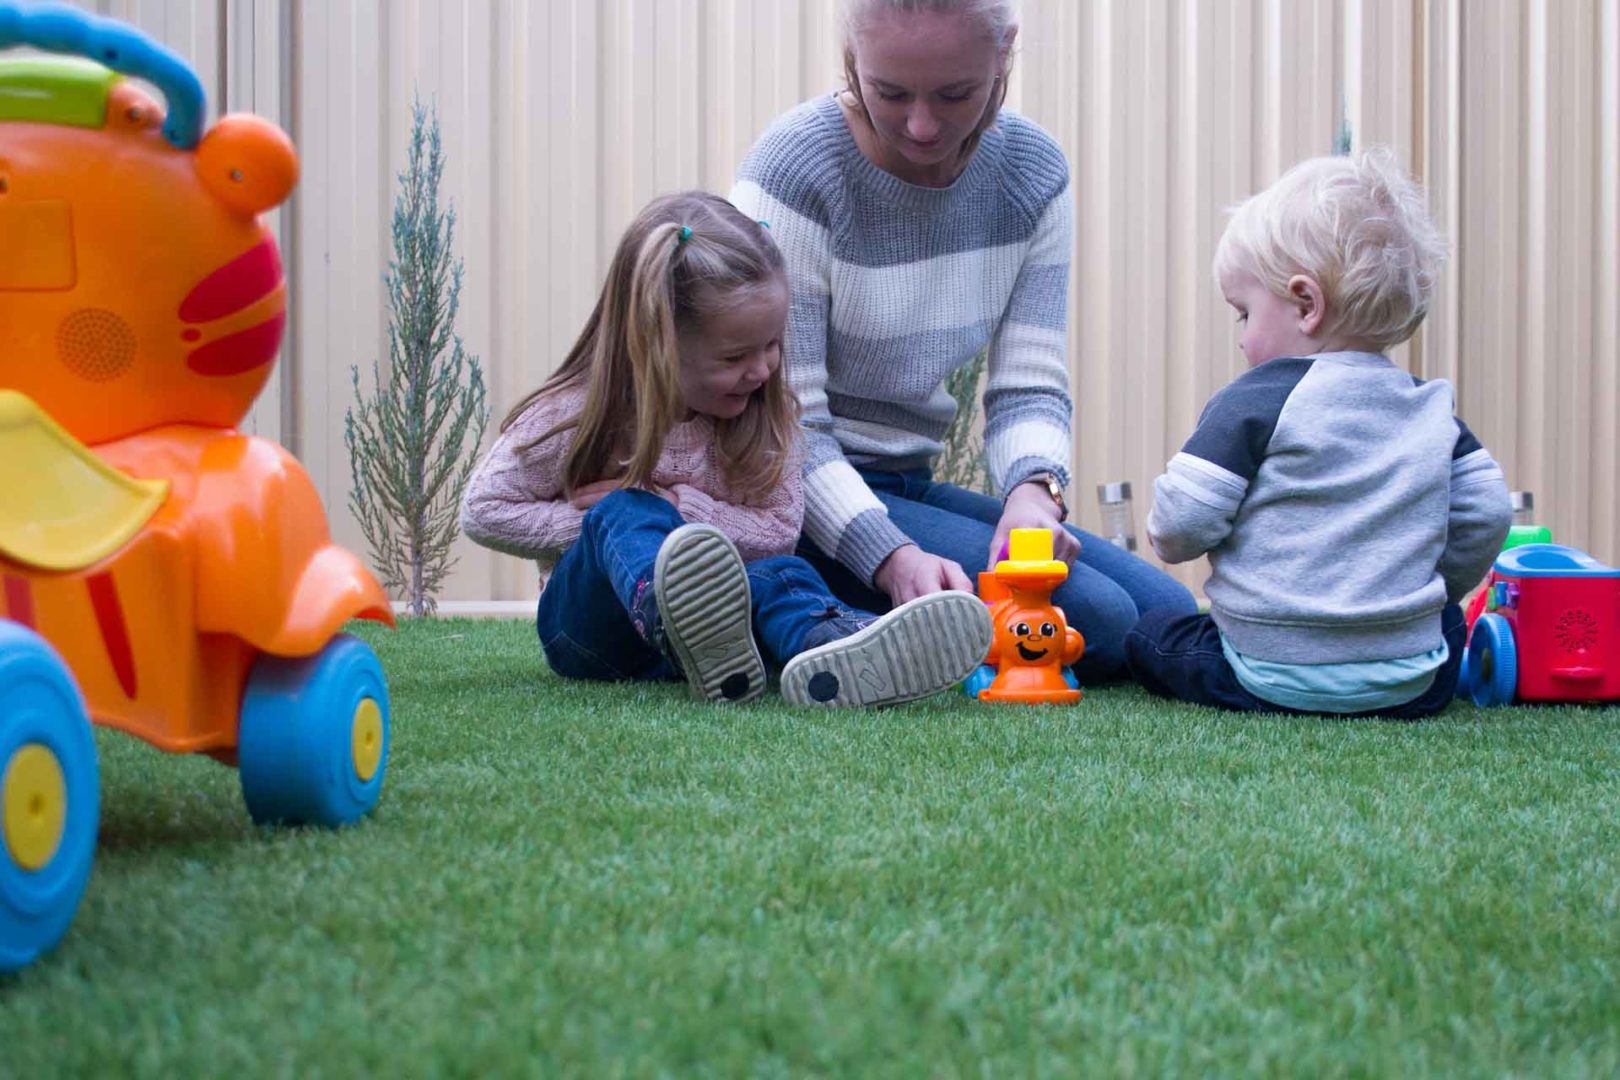 Is artificial grass good for dogs and kids - Artificial grass is soft for kids to play on, Australian Outdoor Living.